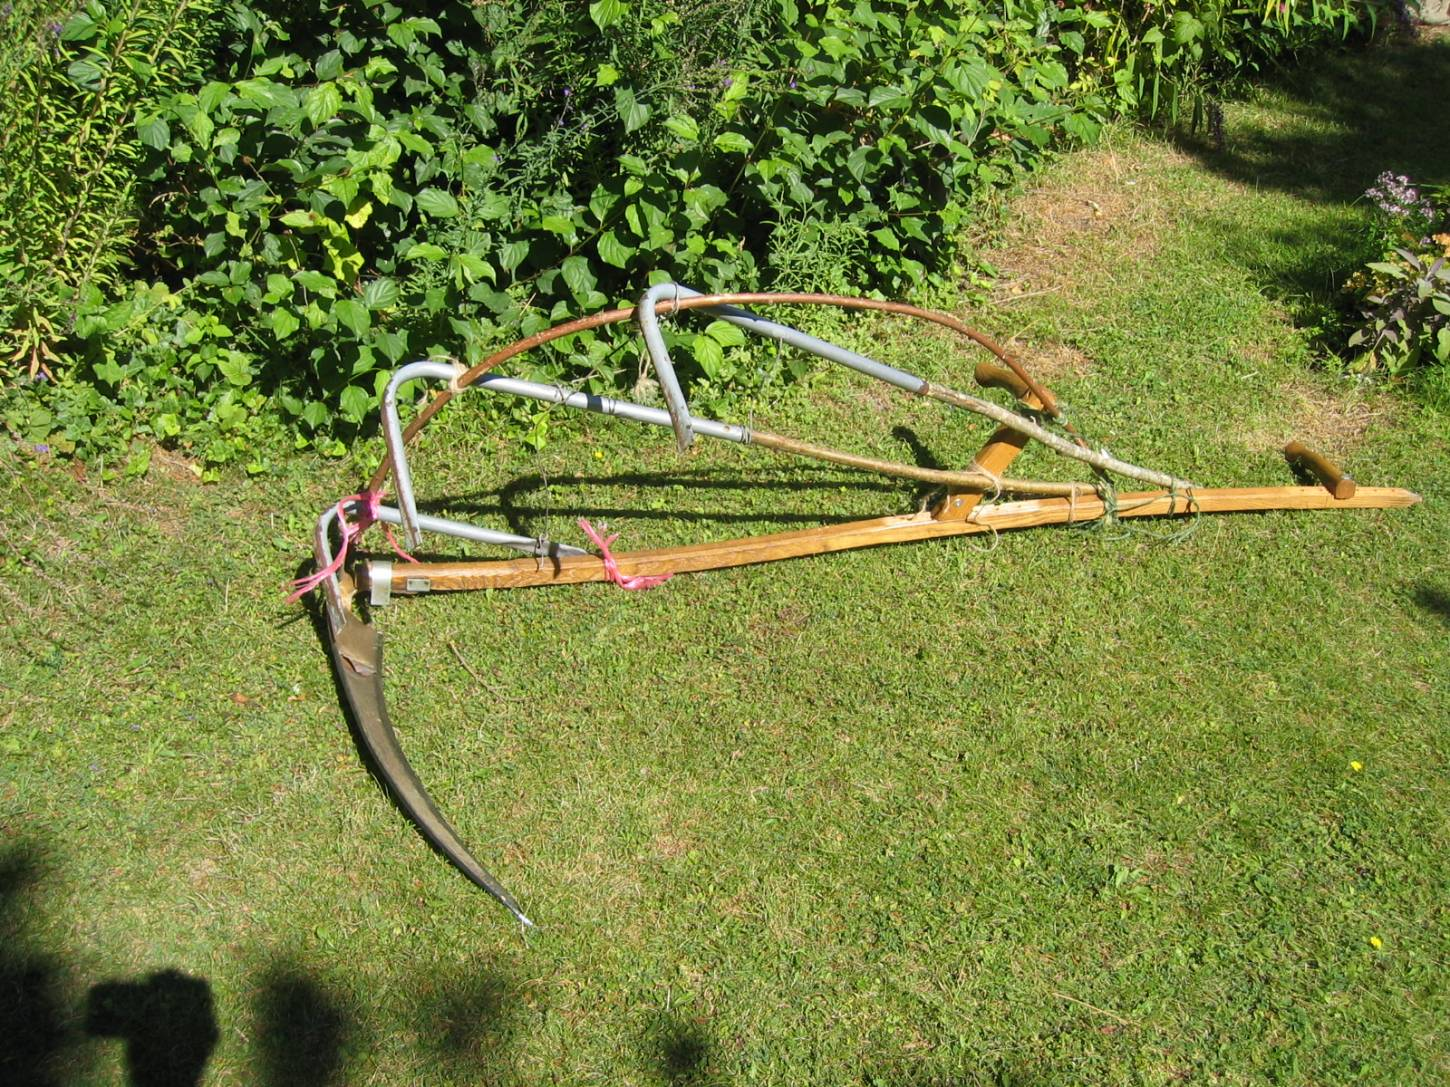 WoWo manual harvest - Stephen and Petra's improvised scythe wheat cradle, it worked - 12:38pm&nbsp;9<sup>th</sup>&nbsp;Aug.&nbsp;'15